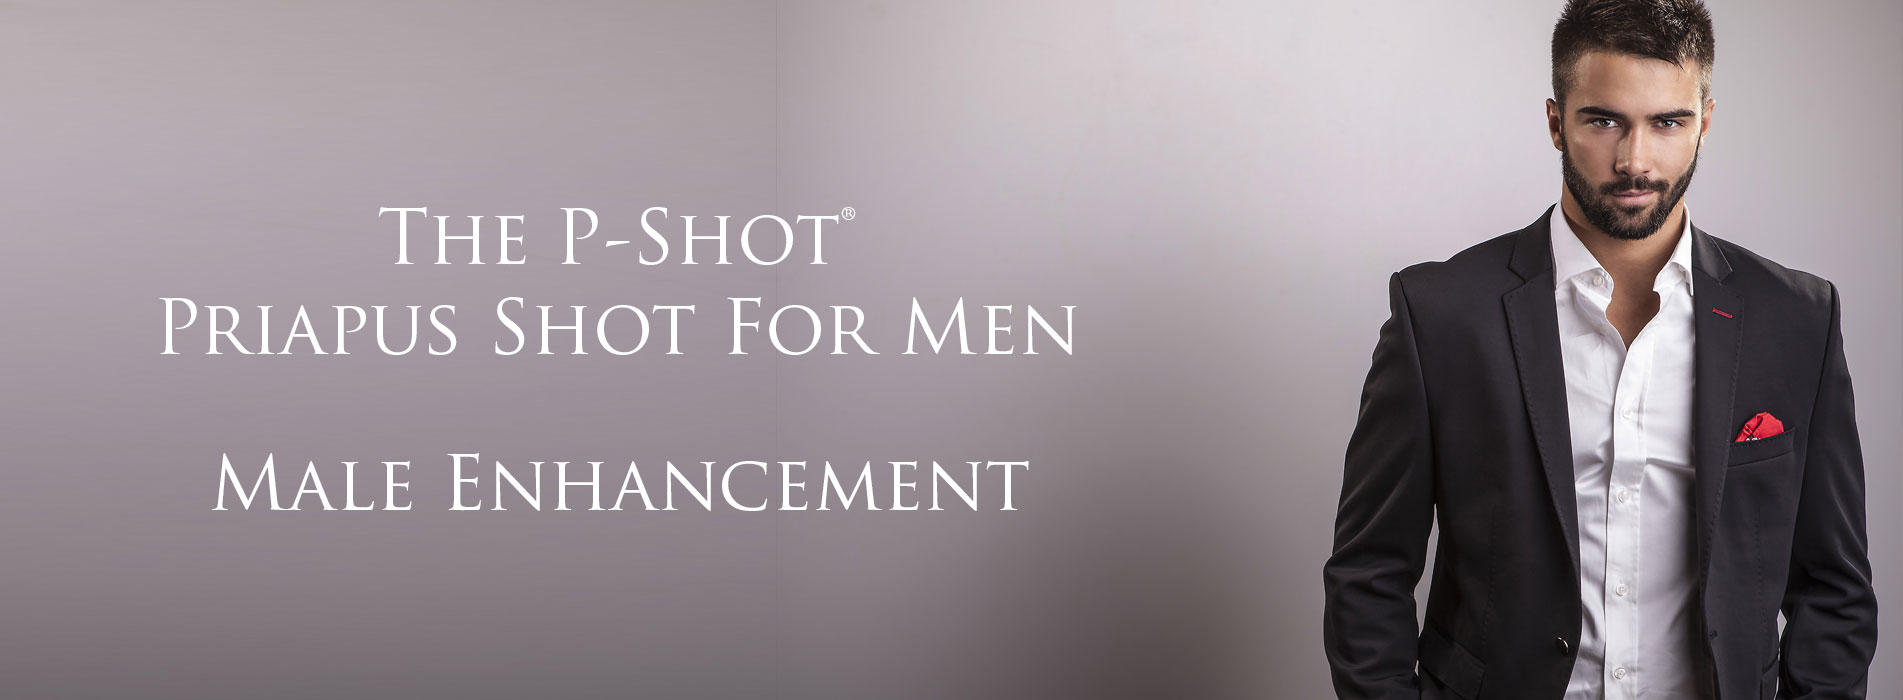 priapus-shot-p-shot-for-men